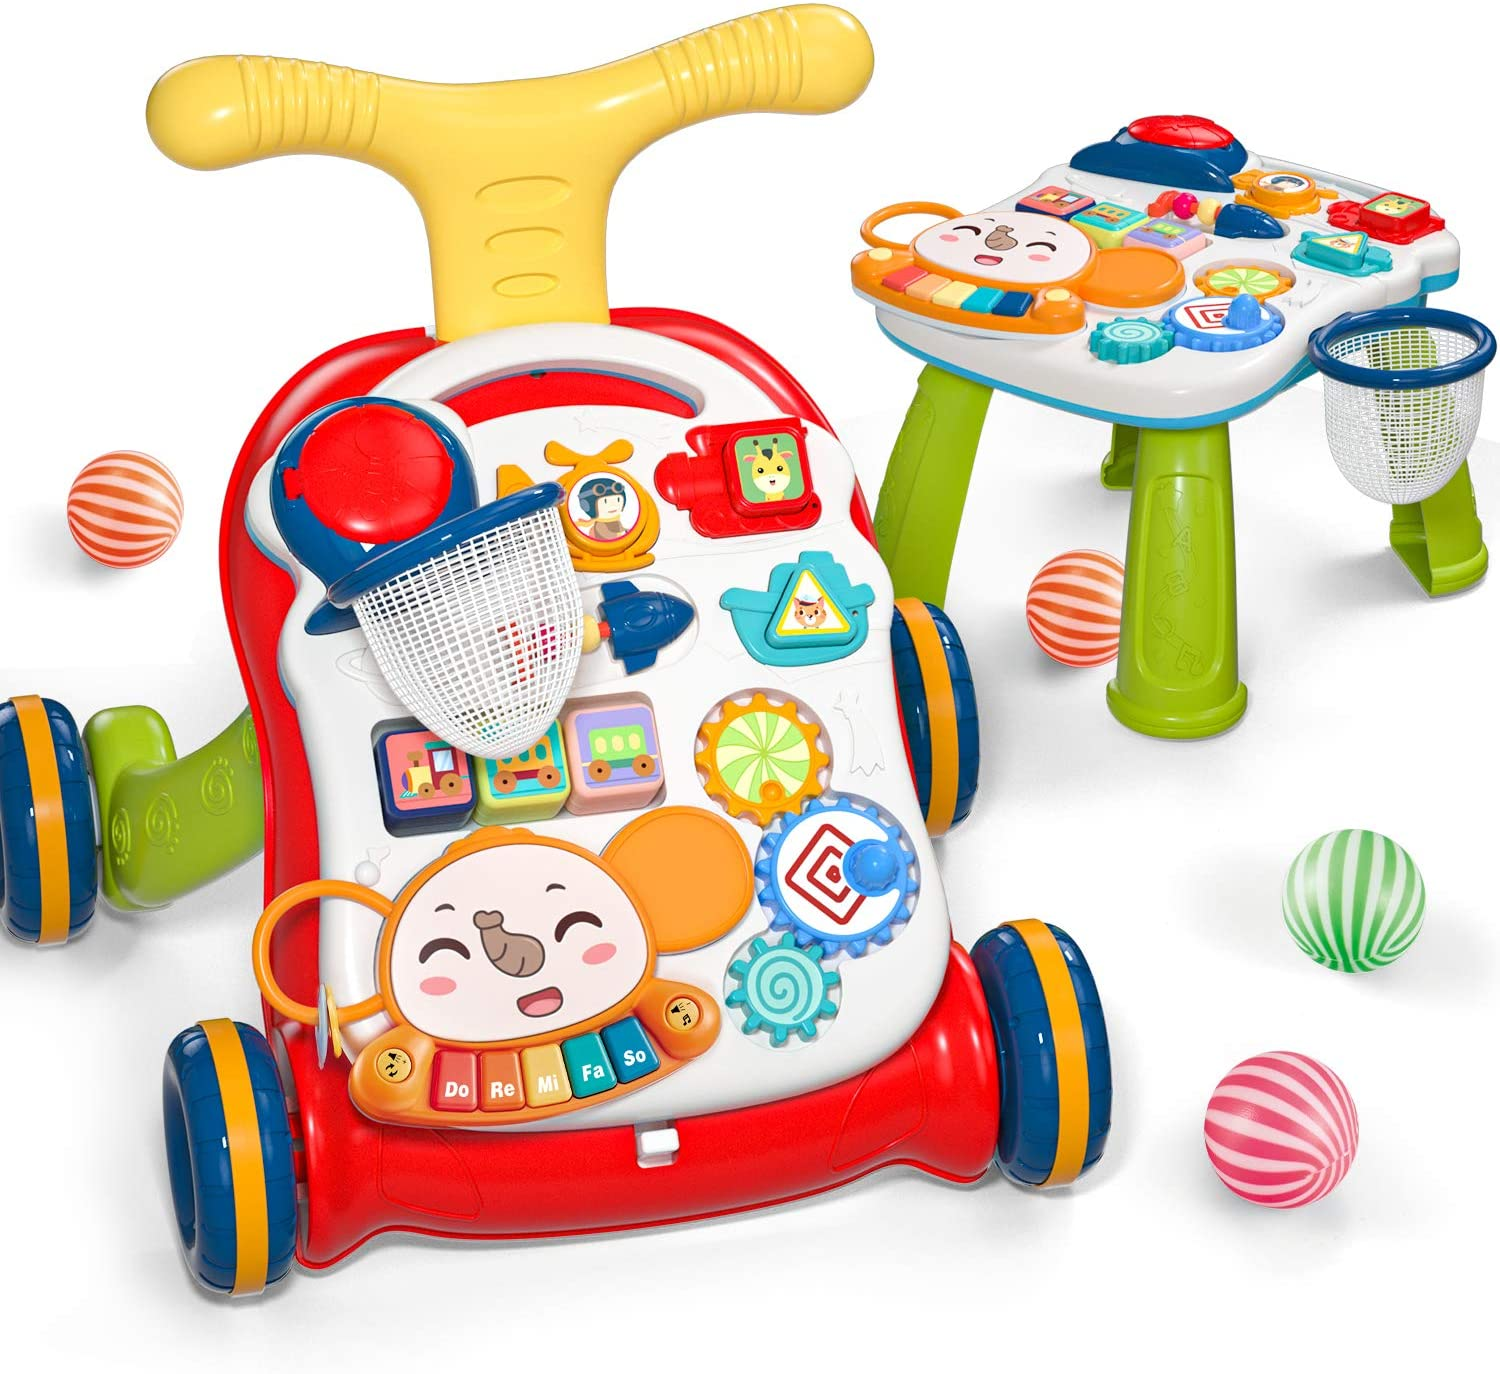 Cute Stone Sit-to-Stand Learning Walker - The Walker and the Removable activity panel behind